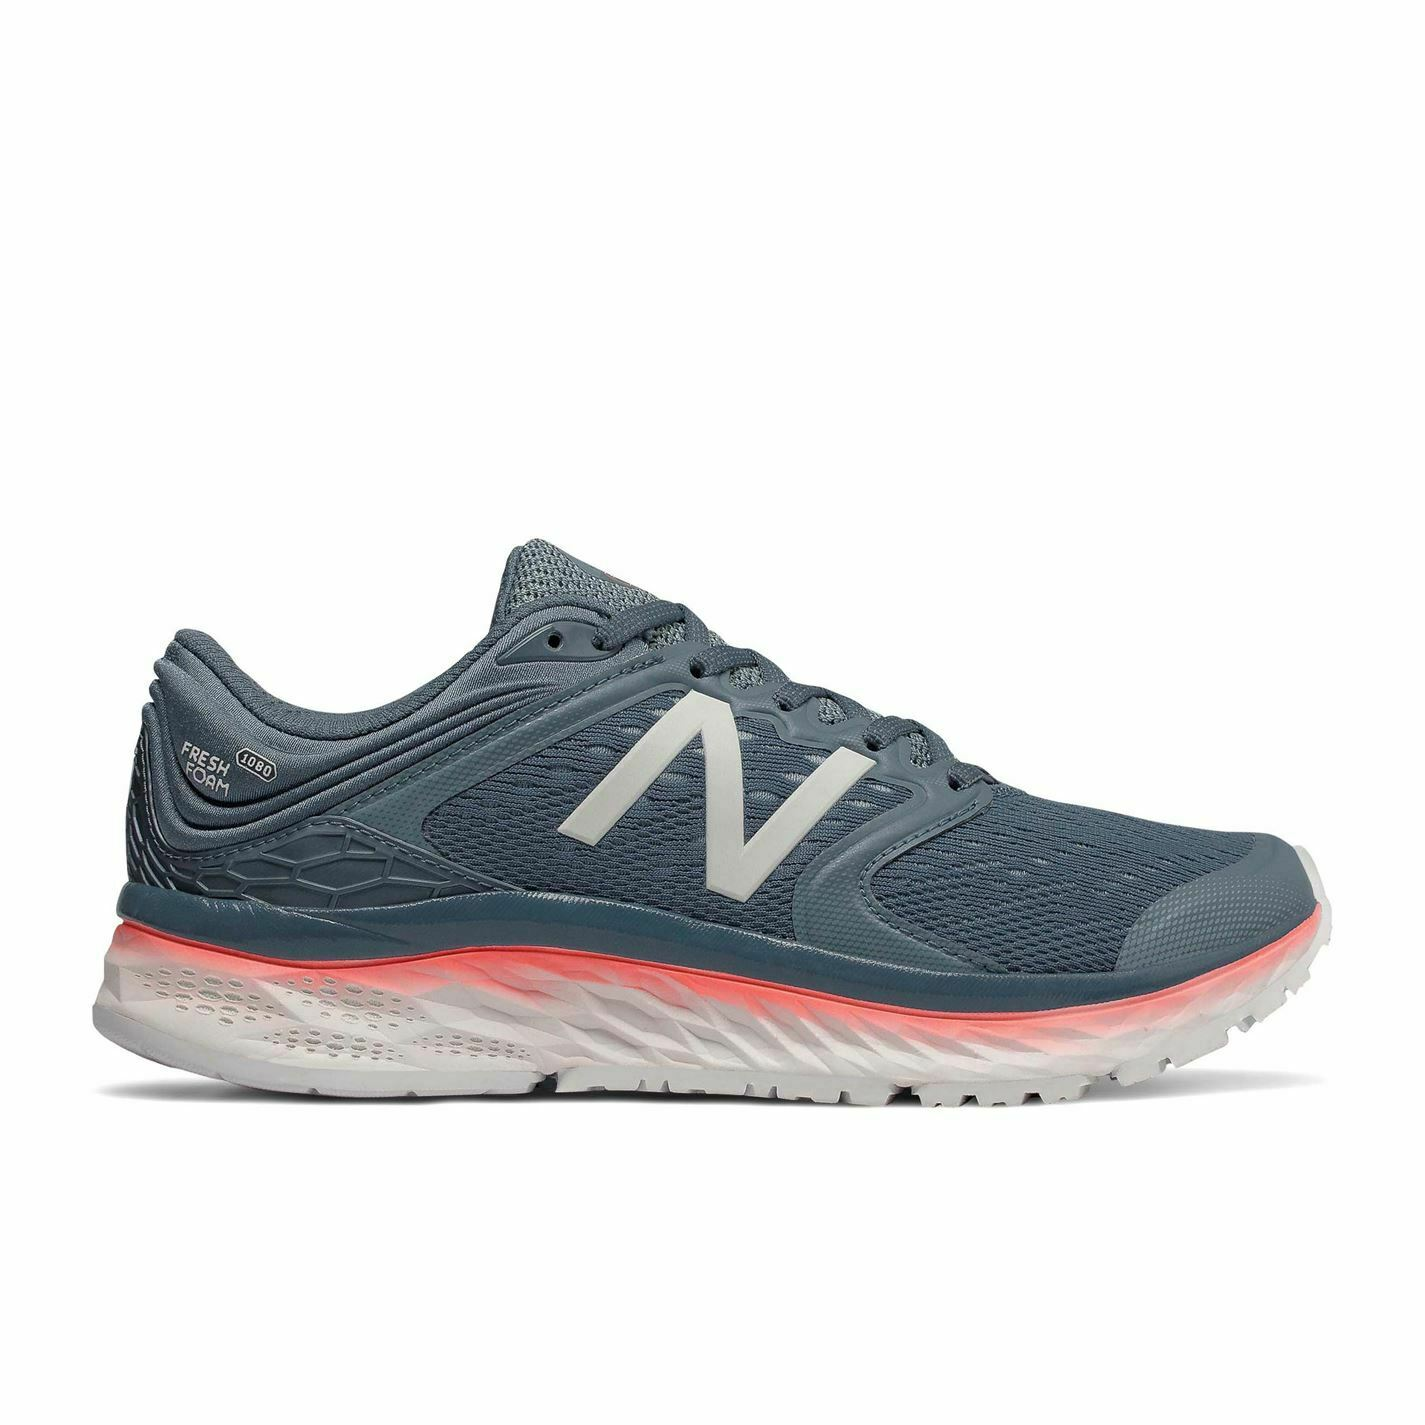 New Balance 1080 v8 Running shoes Ladies Road Ventilated Ortholite Mesh